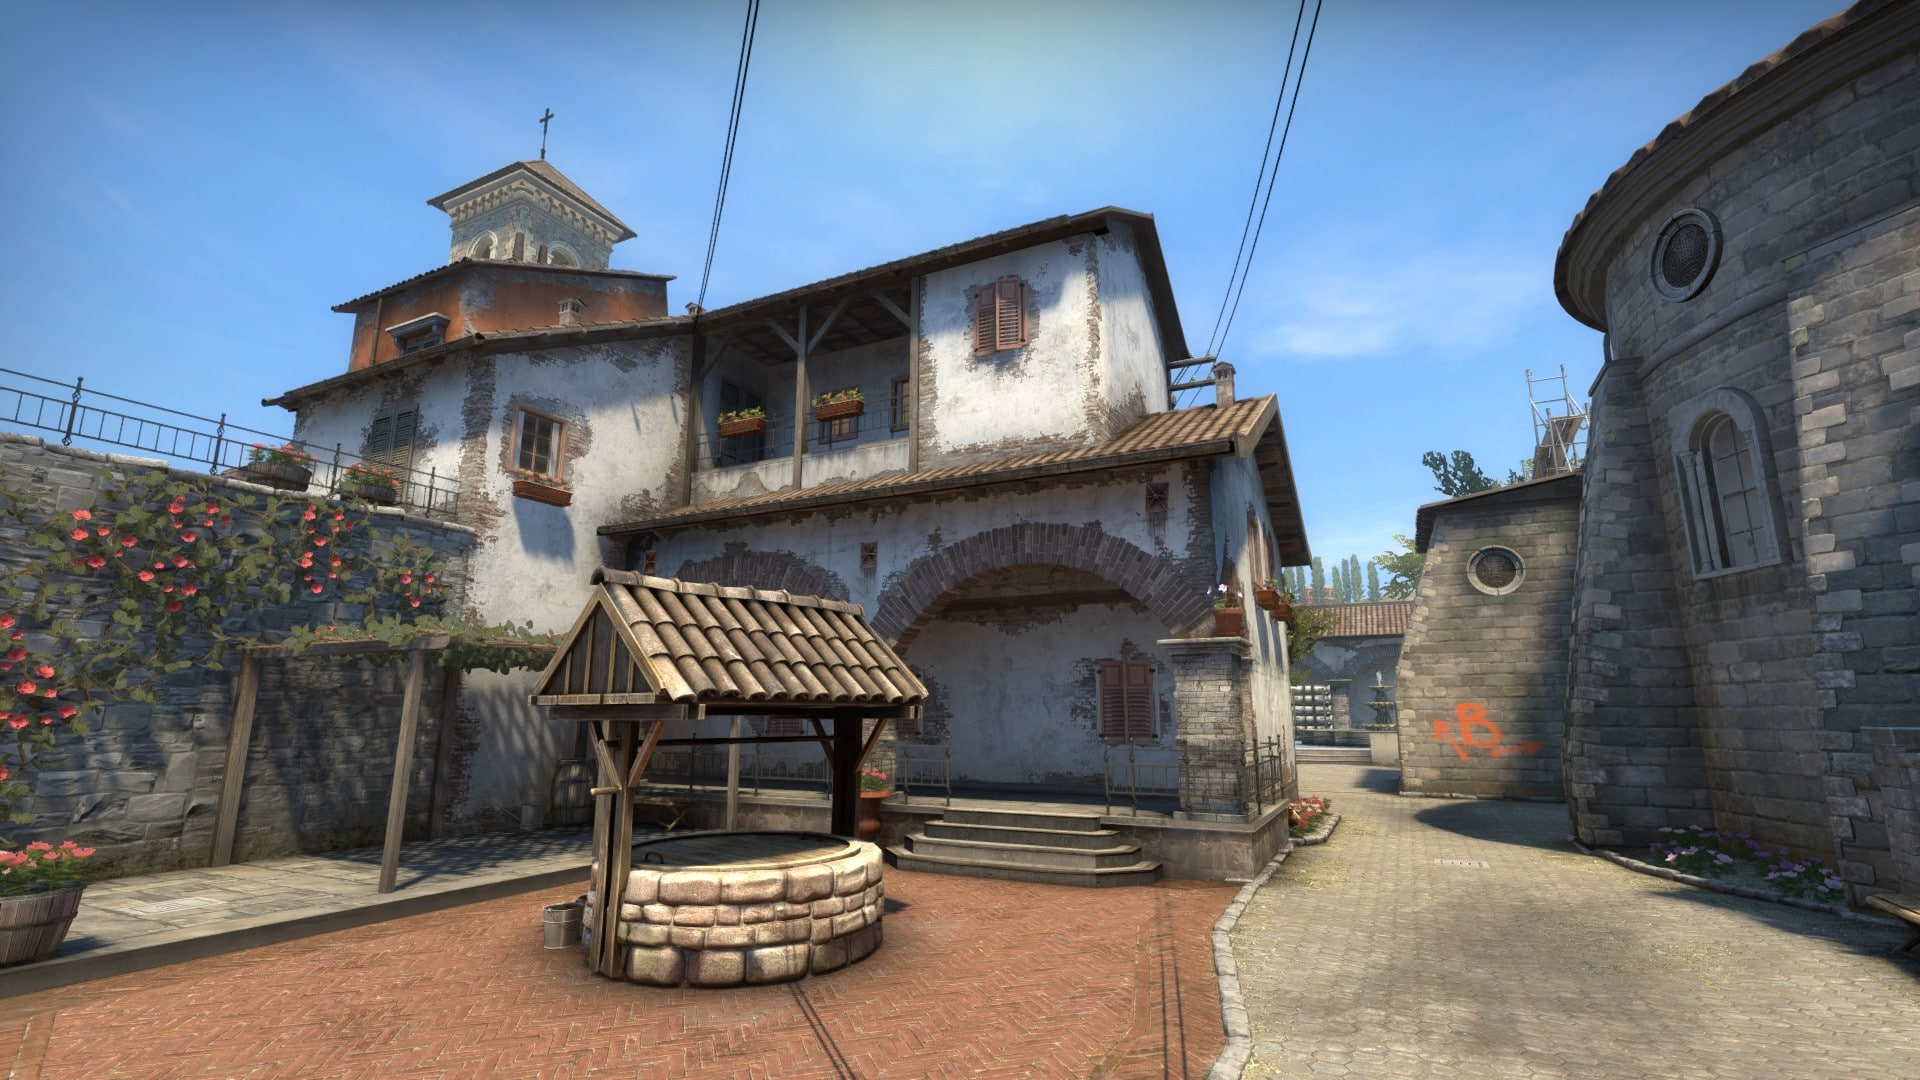 https://gaming4.cash/wp-content/uploads/2019/03/de_inferno-CSGO-map.jpg